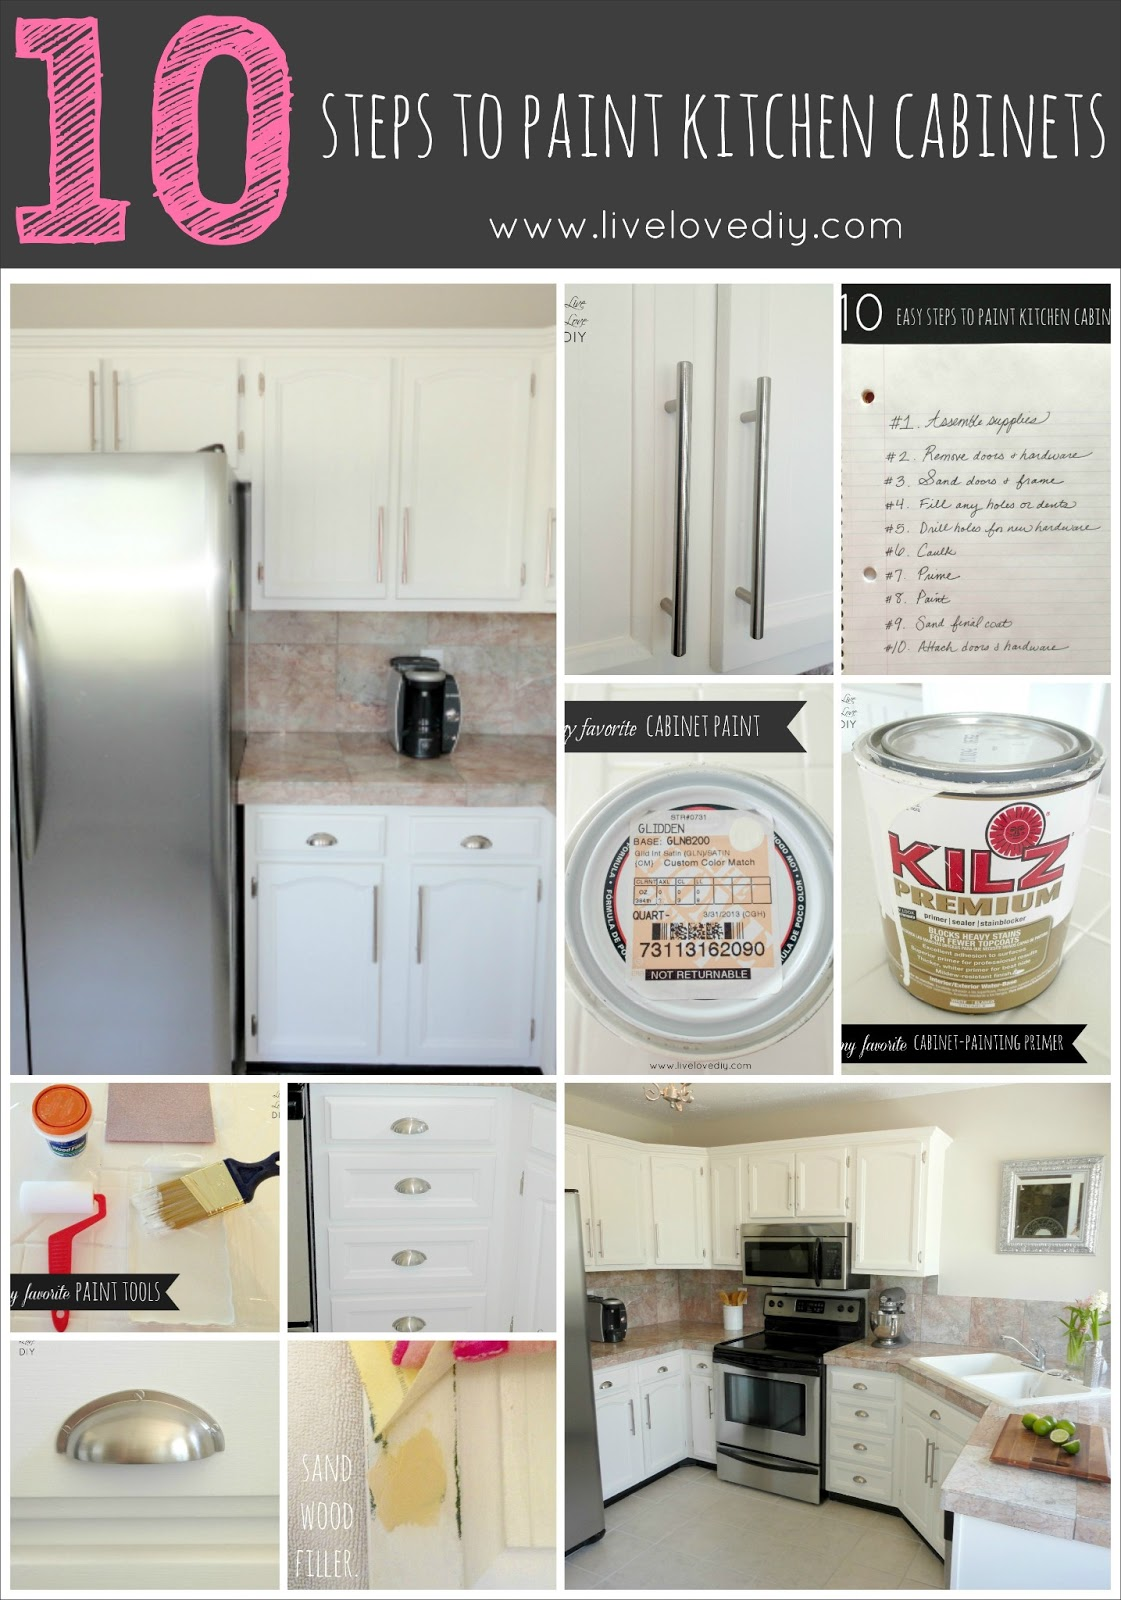 10 easy steps to paint kitchen cabinets spray painting kitchen cabinets How To Paint Kitchen Cabinets in 10 Easy Steps